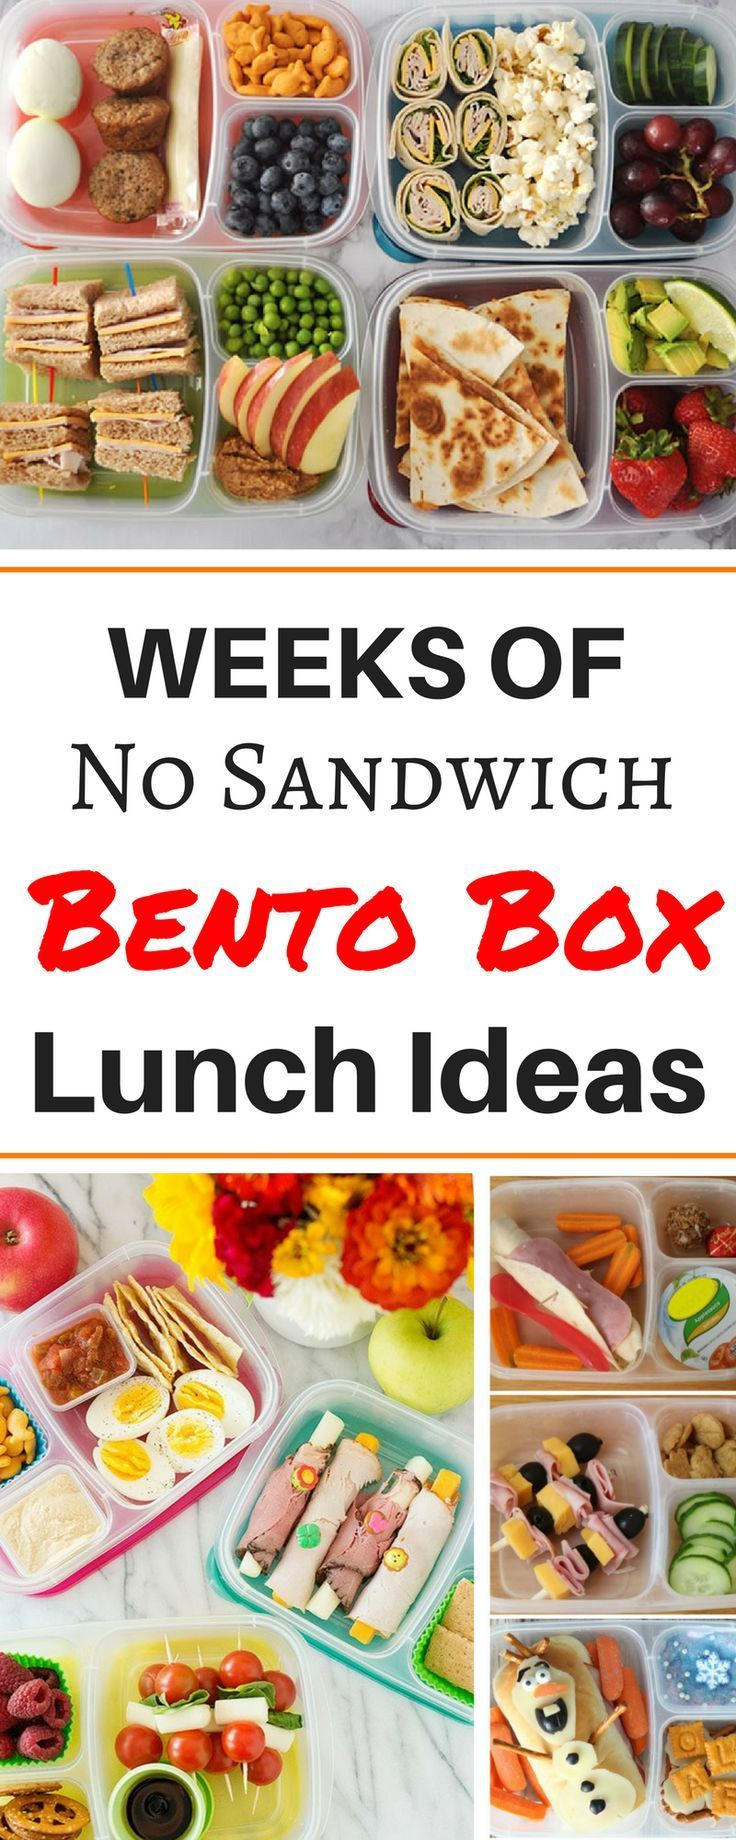 Healthy Creative School Lunch Ideas for Your Bento Box